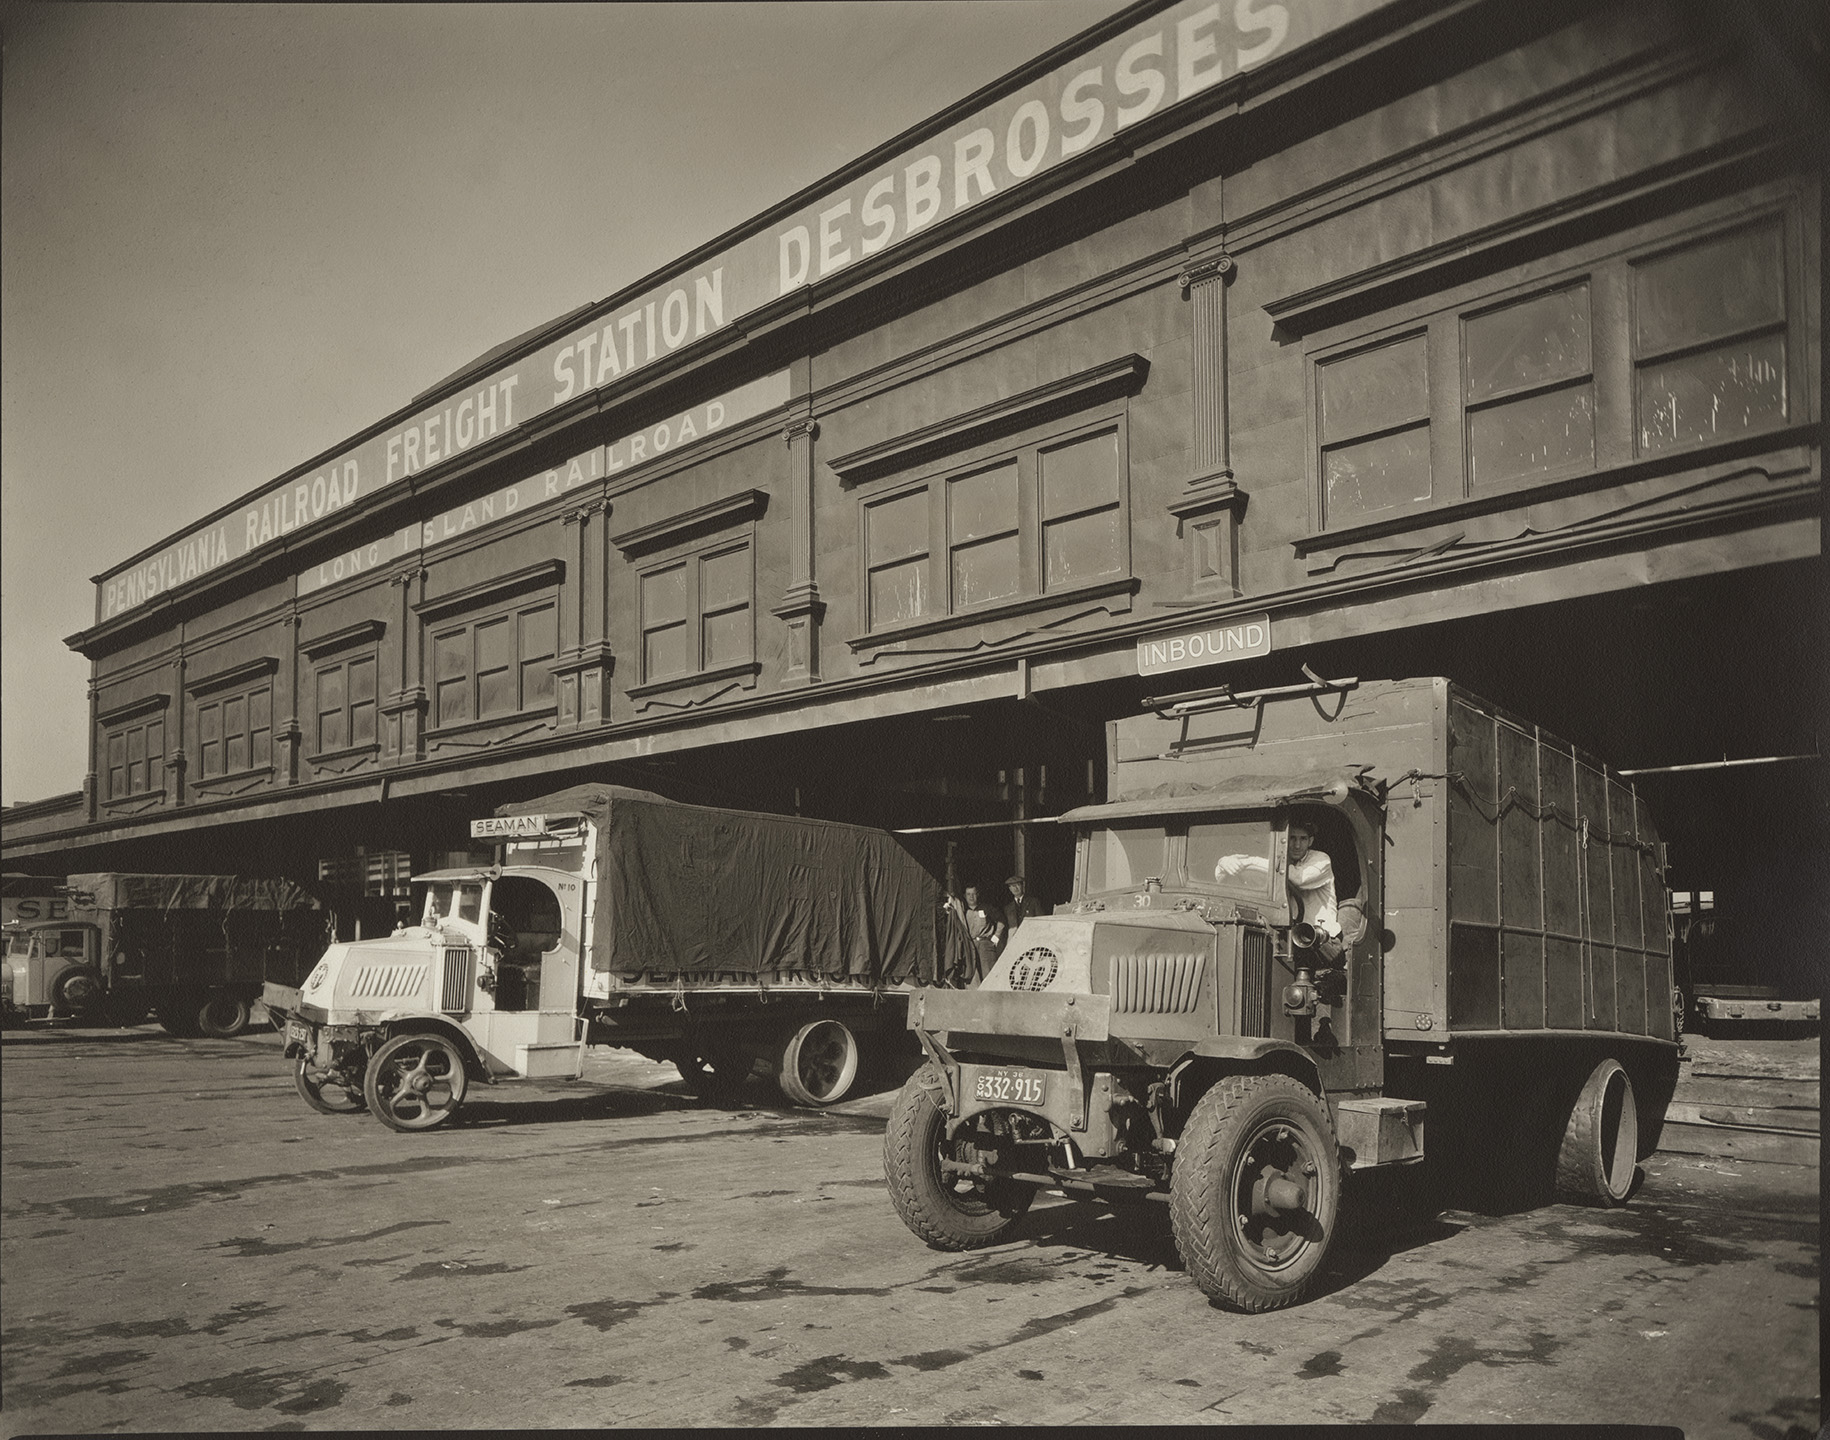 Trucks, West and Debrosses Streets, June 18, 1936. Photograph by Berenice Abbott, WPA Federal Writers' Project collection, NYC Municipal Archives.